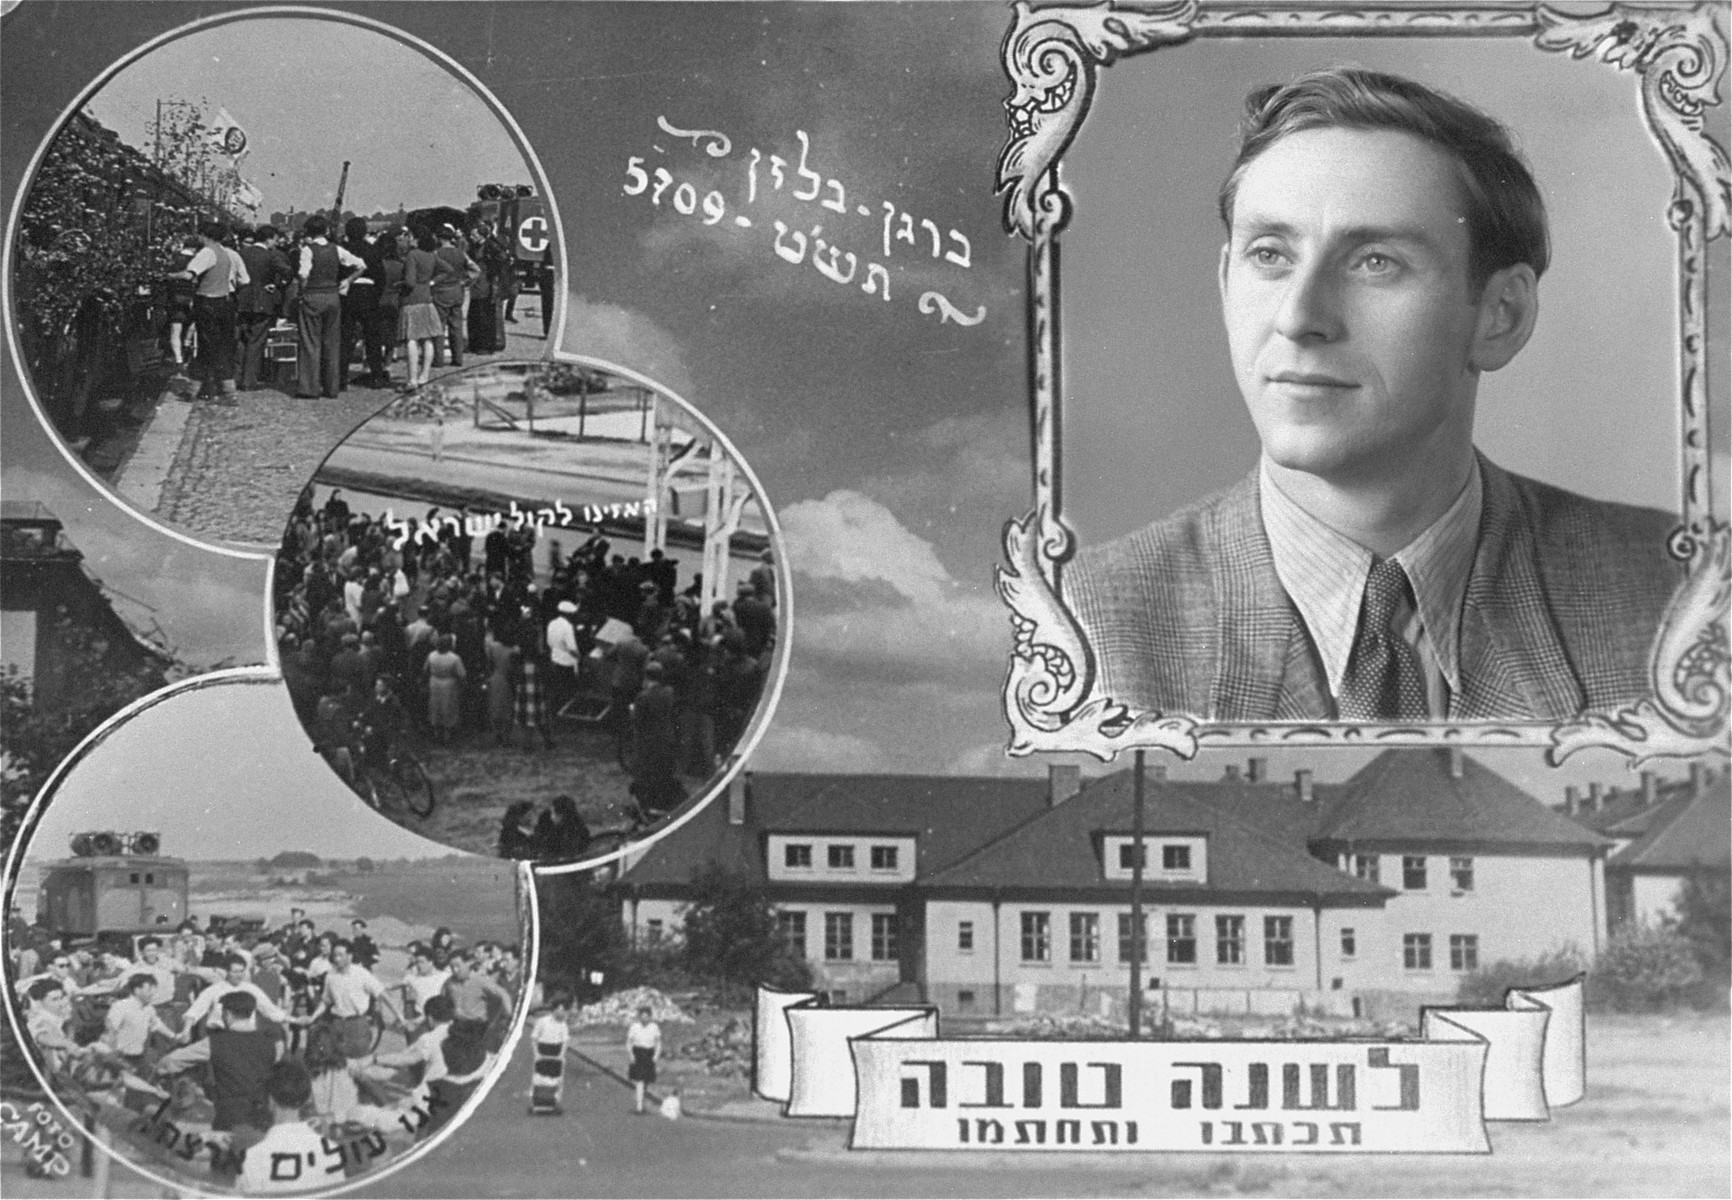 """Personalized Jewish New Year's card sent by Josef Lipnicki, a Jewish DP living in the Bergen-Belsen displaced persons camp.  The Hebrew texts read: """"Bergen-Belsen 5709"""" (top), """"Listen to the voice of Israel"""" (middle), """"We are immigrating to the Land of Israel"""" (bottom left), and """"May you be written and inscribed for a good year"""" (bottom right)."""